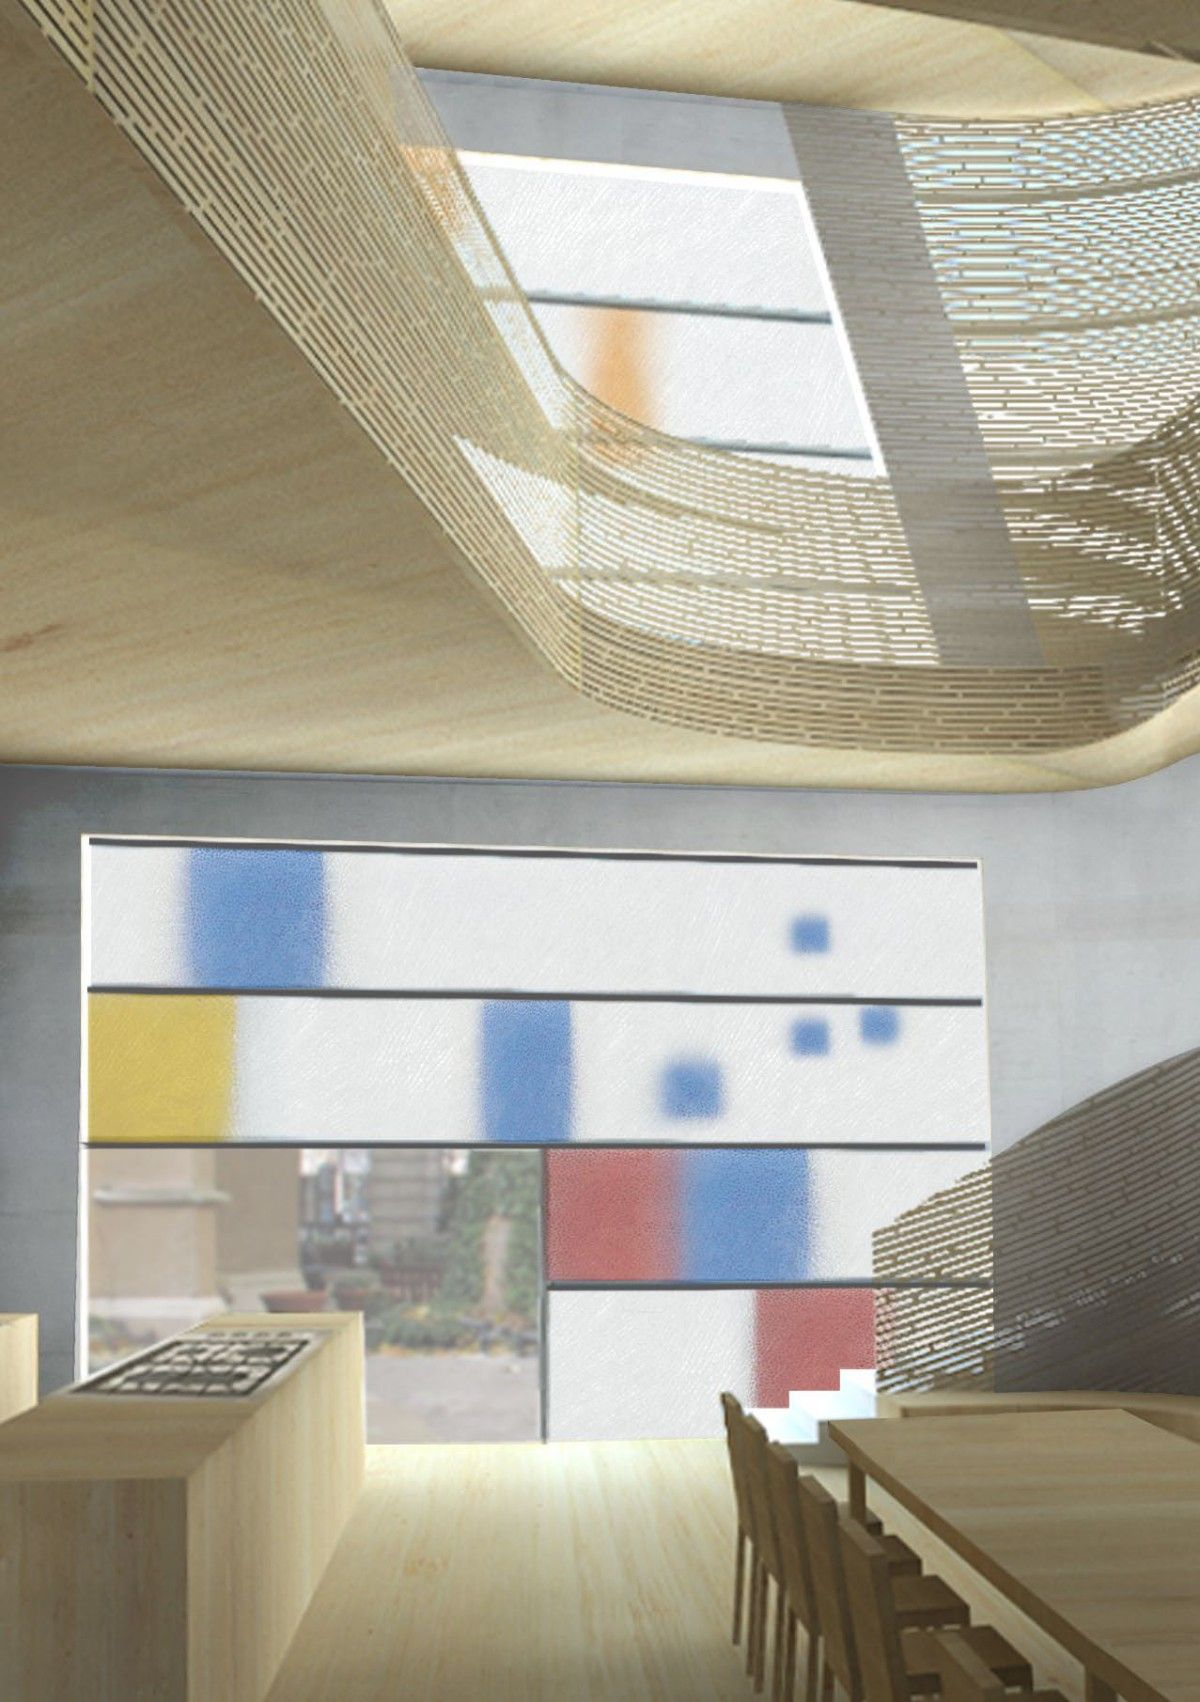 Steven Holl Architects . Maggie's Centre Barts. London (30